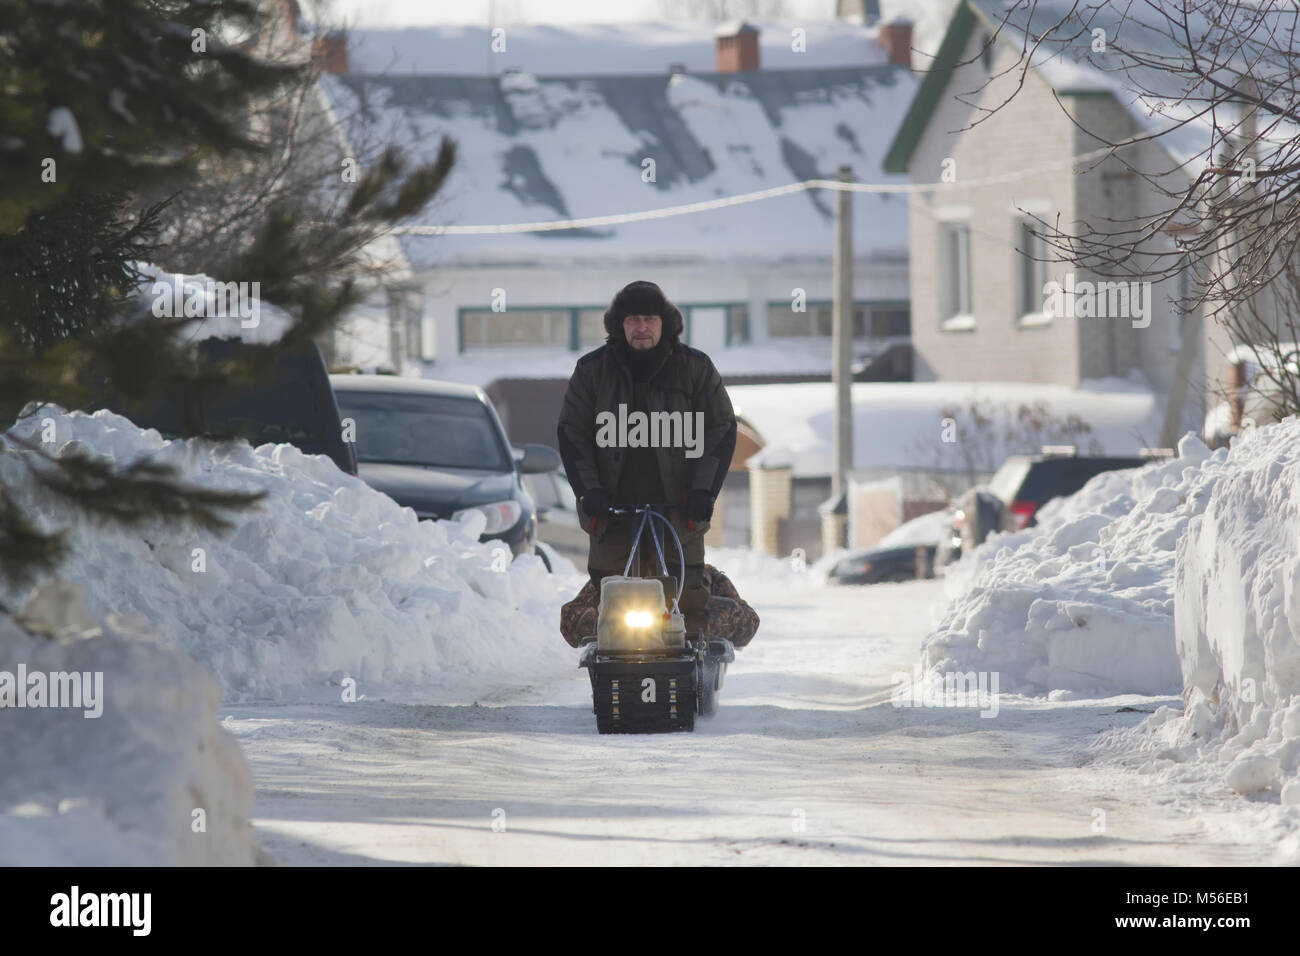 Compact snowmobile - motorcycle towing pulls cargo on snow countryside - Stock Image